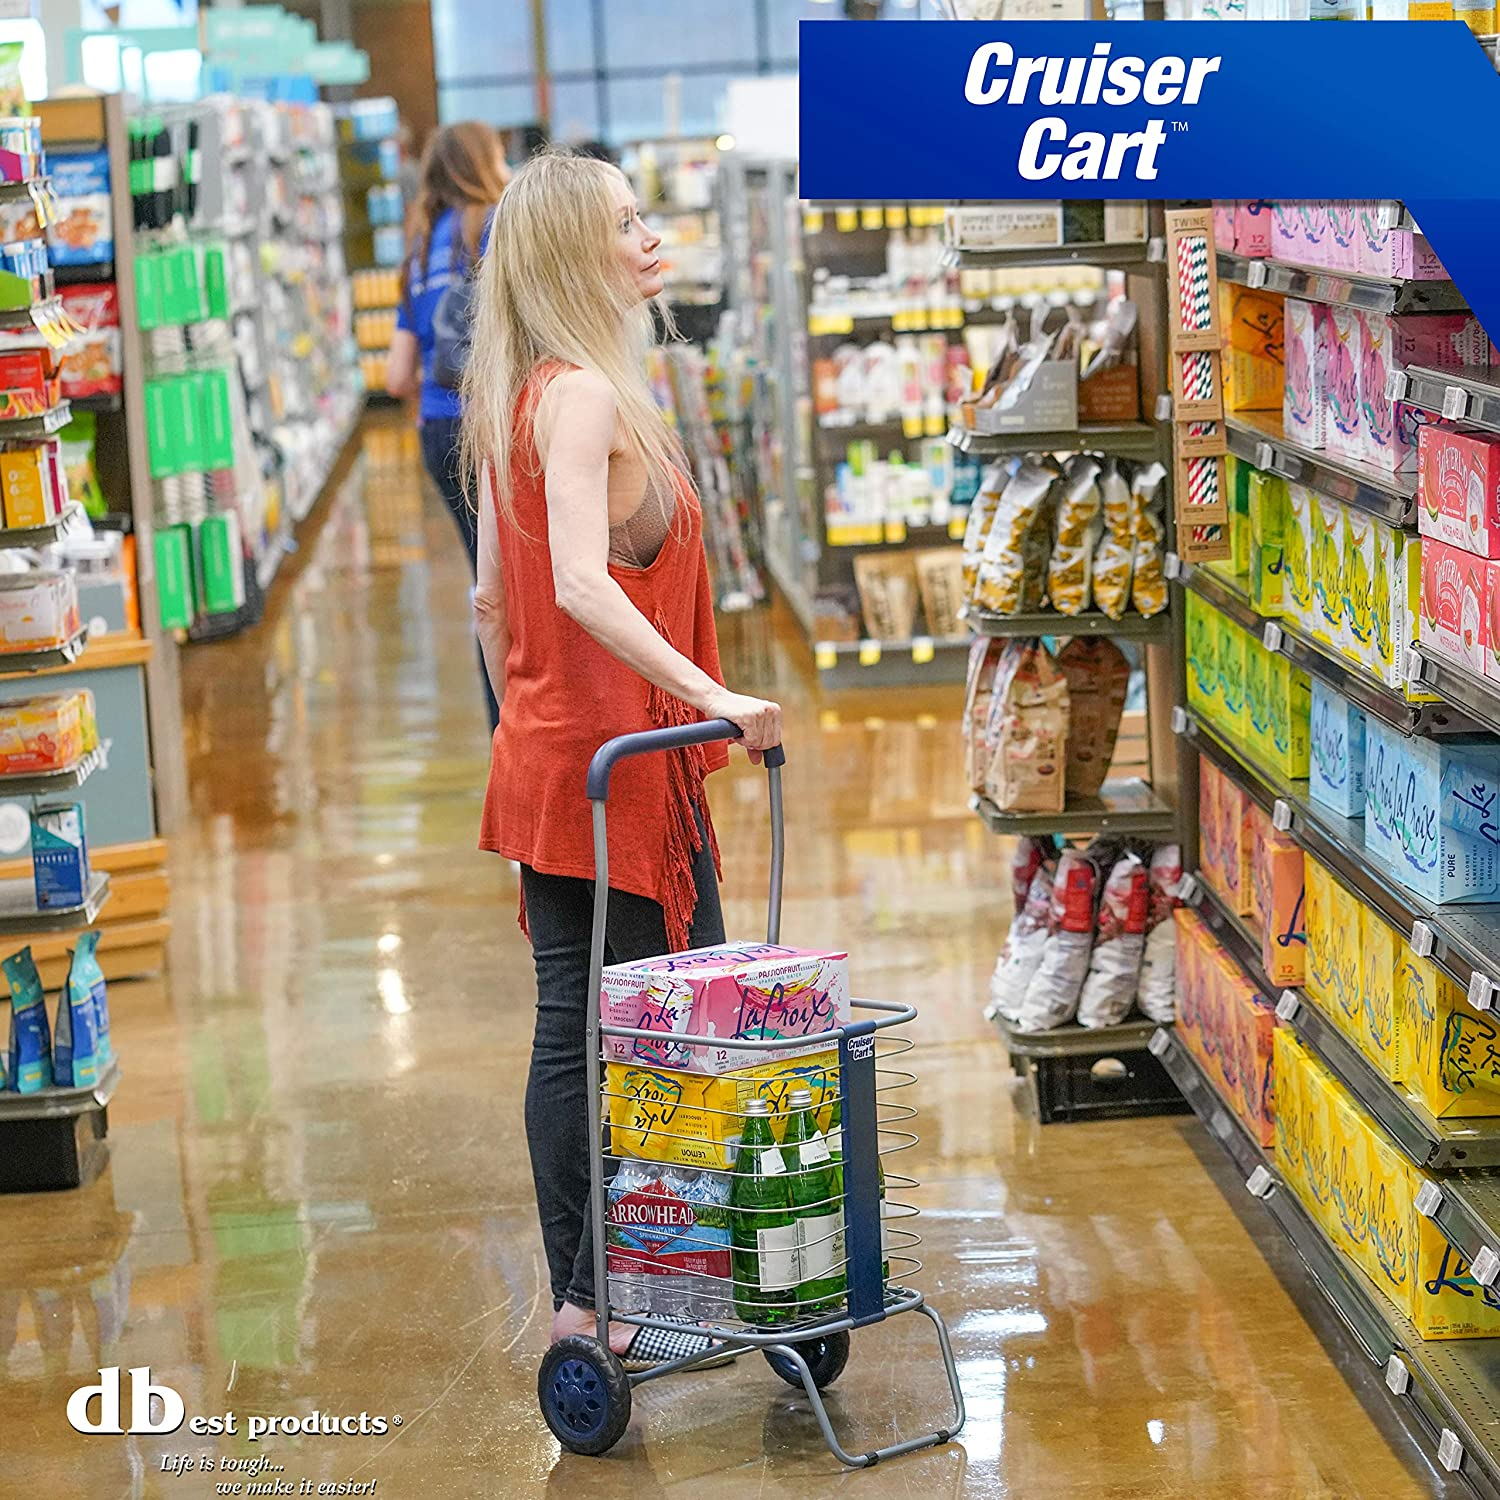 dbest products Cruiser Flex Shopping Cart with Bag Cover Grocery Rolling Folding Laundry Basket on Wheels Foldable Utility Trolley Compact Lightweight Collapsible Black